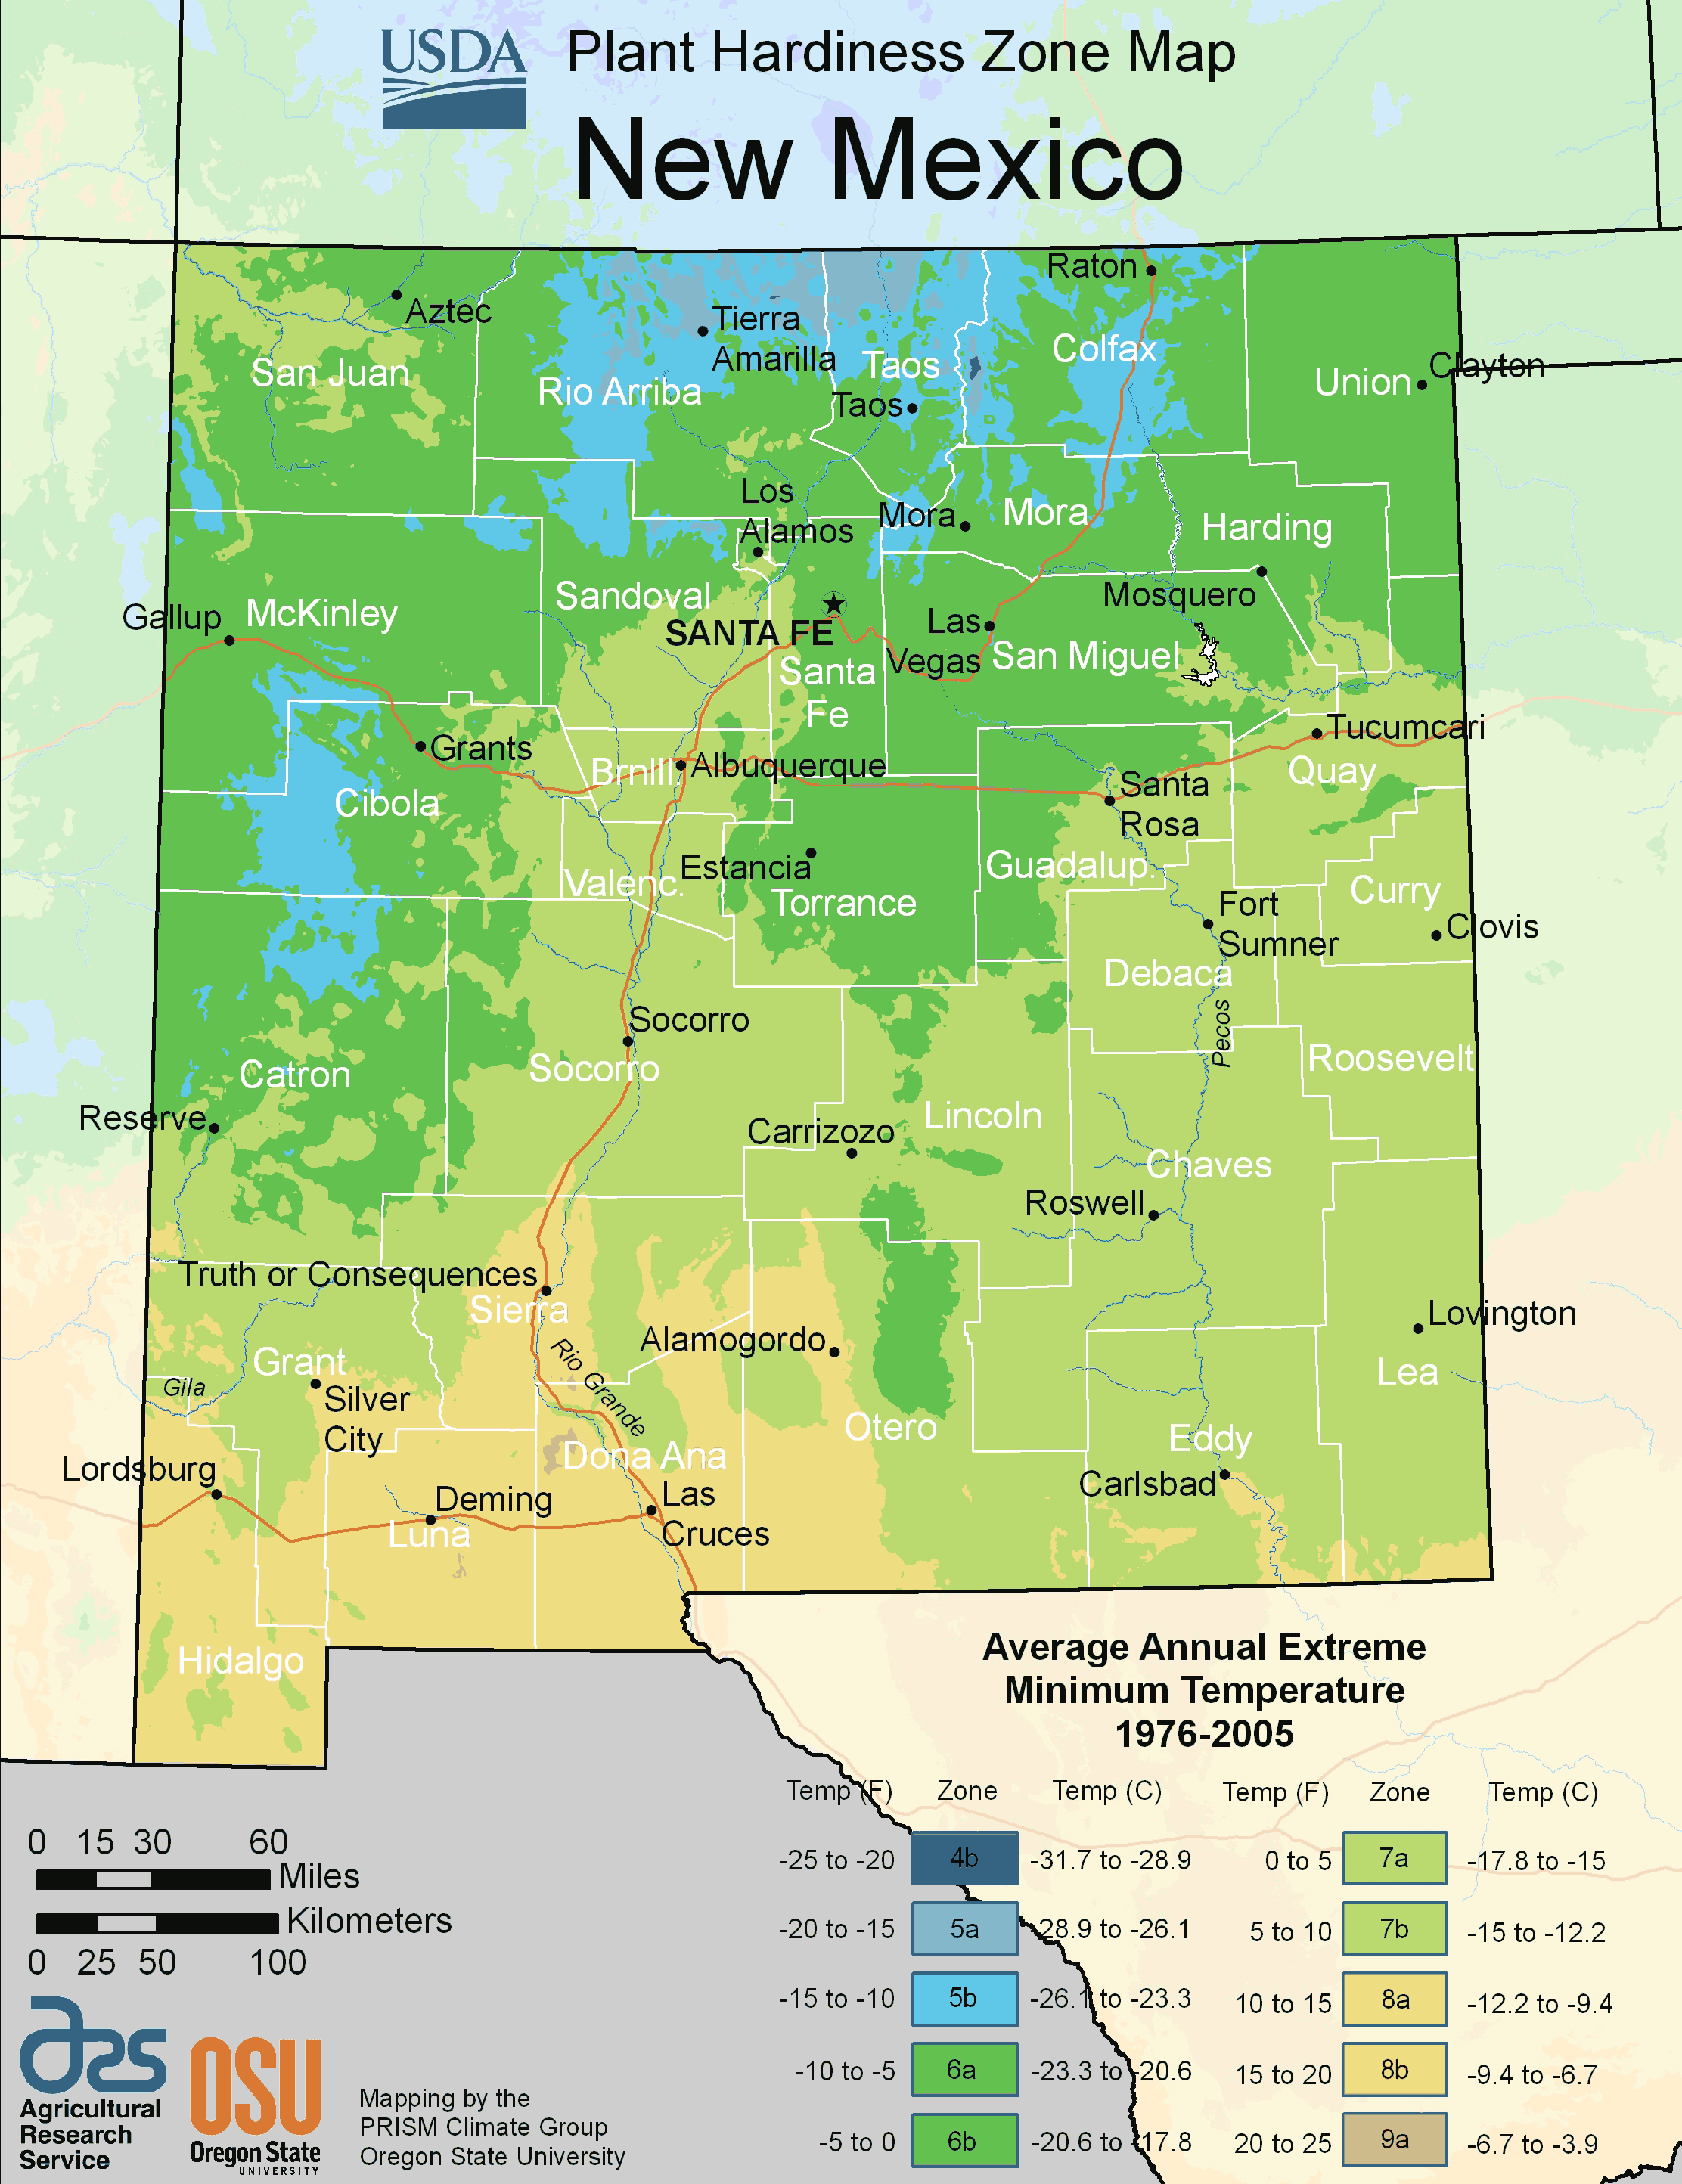 New Mexico Plant Hardiness Zone Map